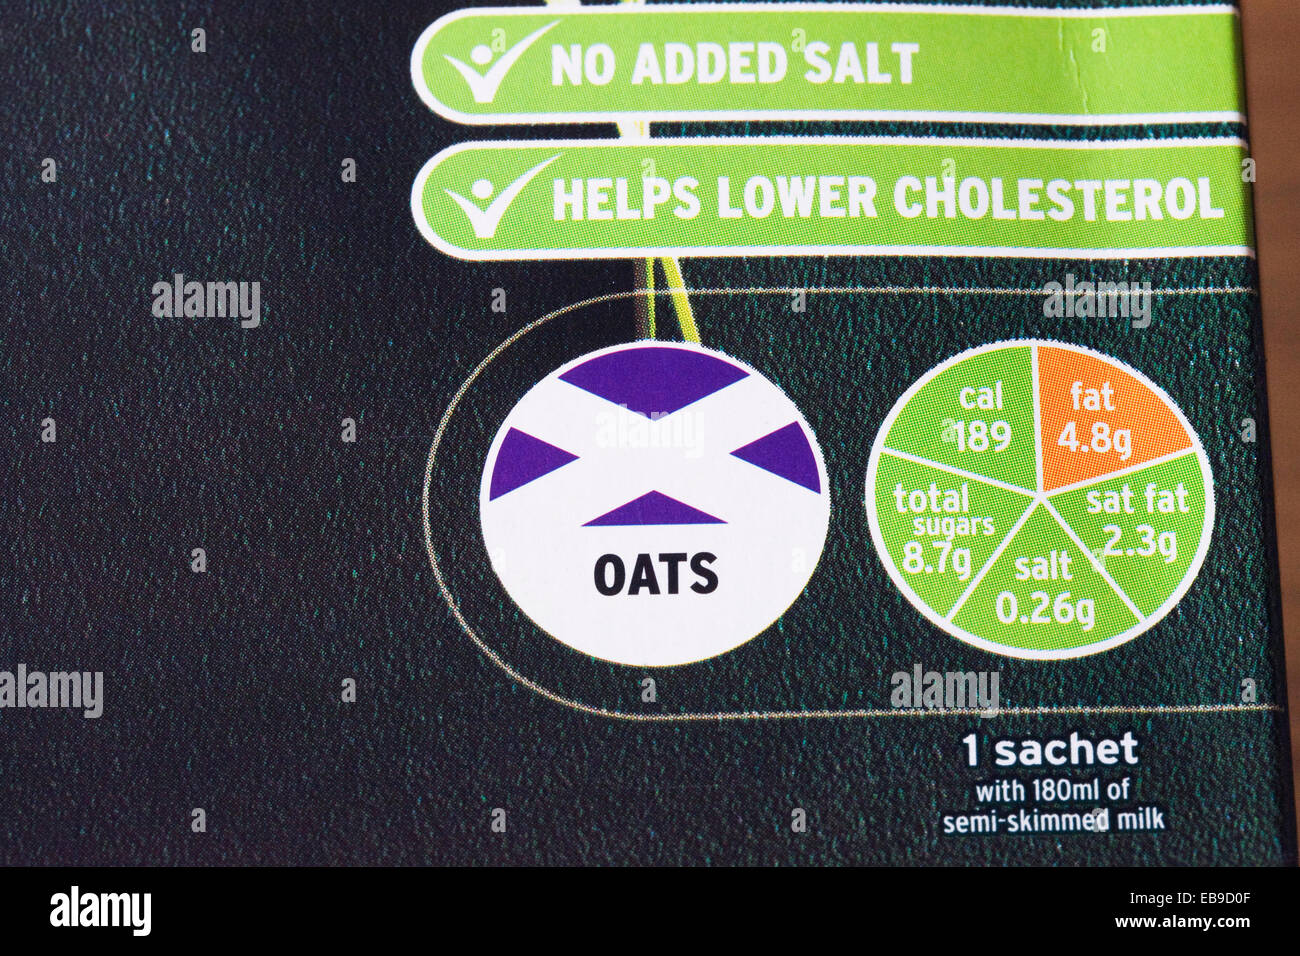 Nutritional information on a packet of Porridge Oats. - Stock Image